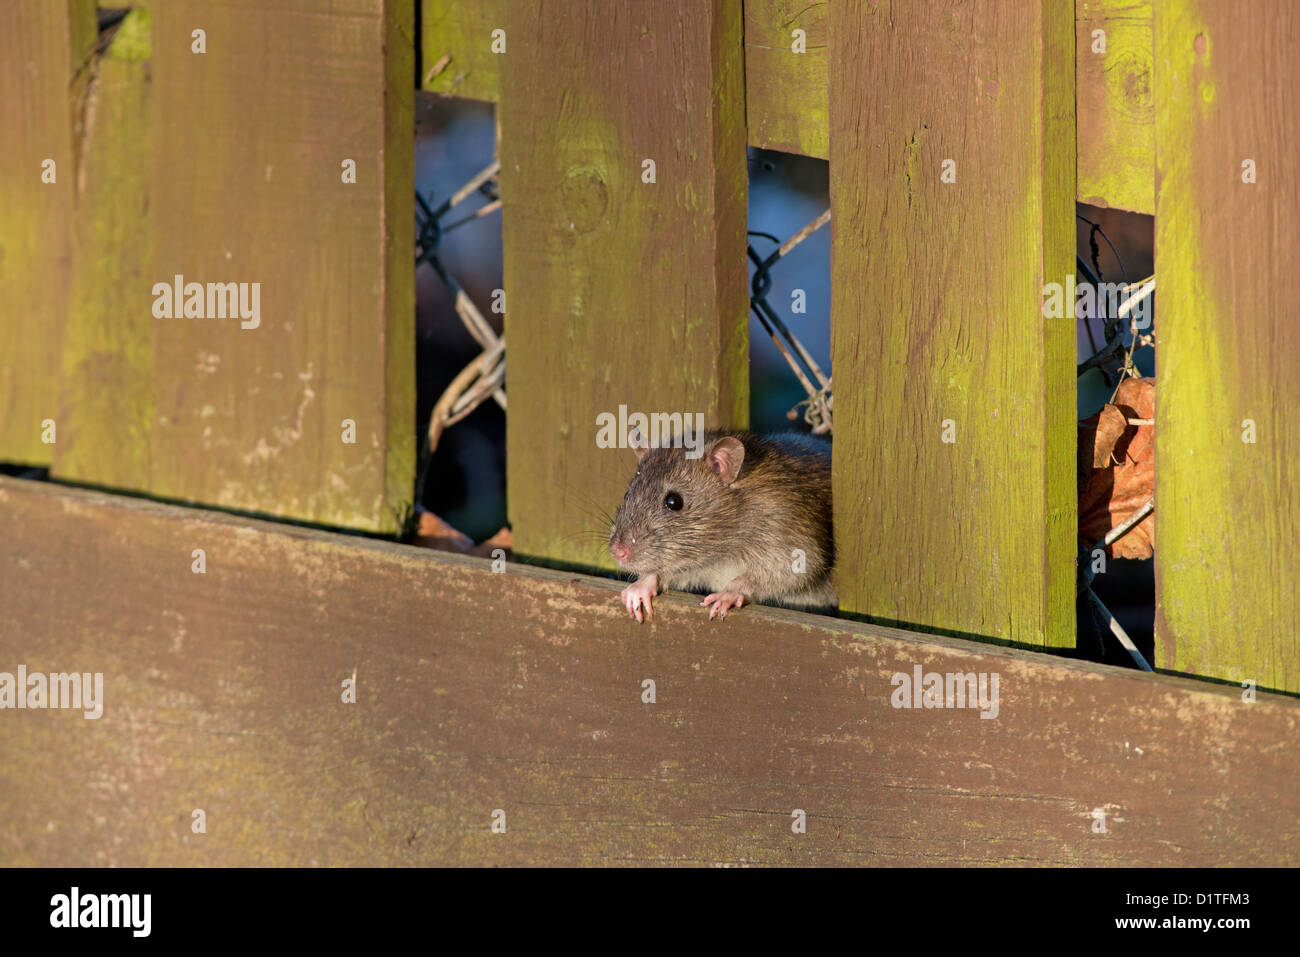 BROWN RAT, Rattus norvegicus. - Stock Image